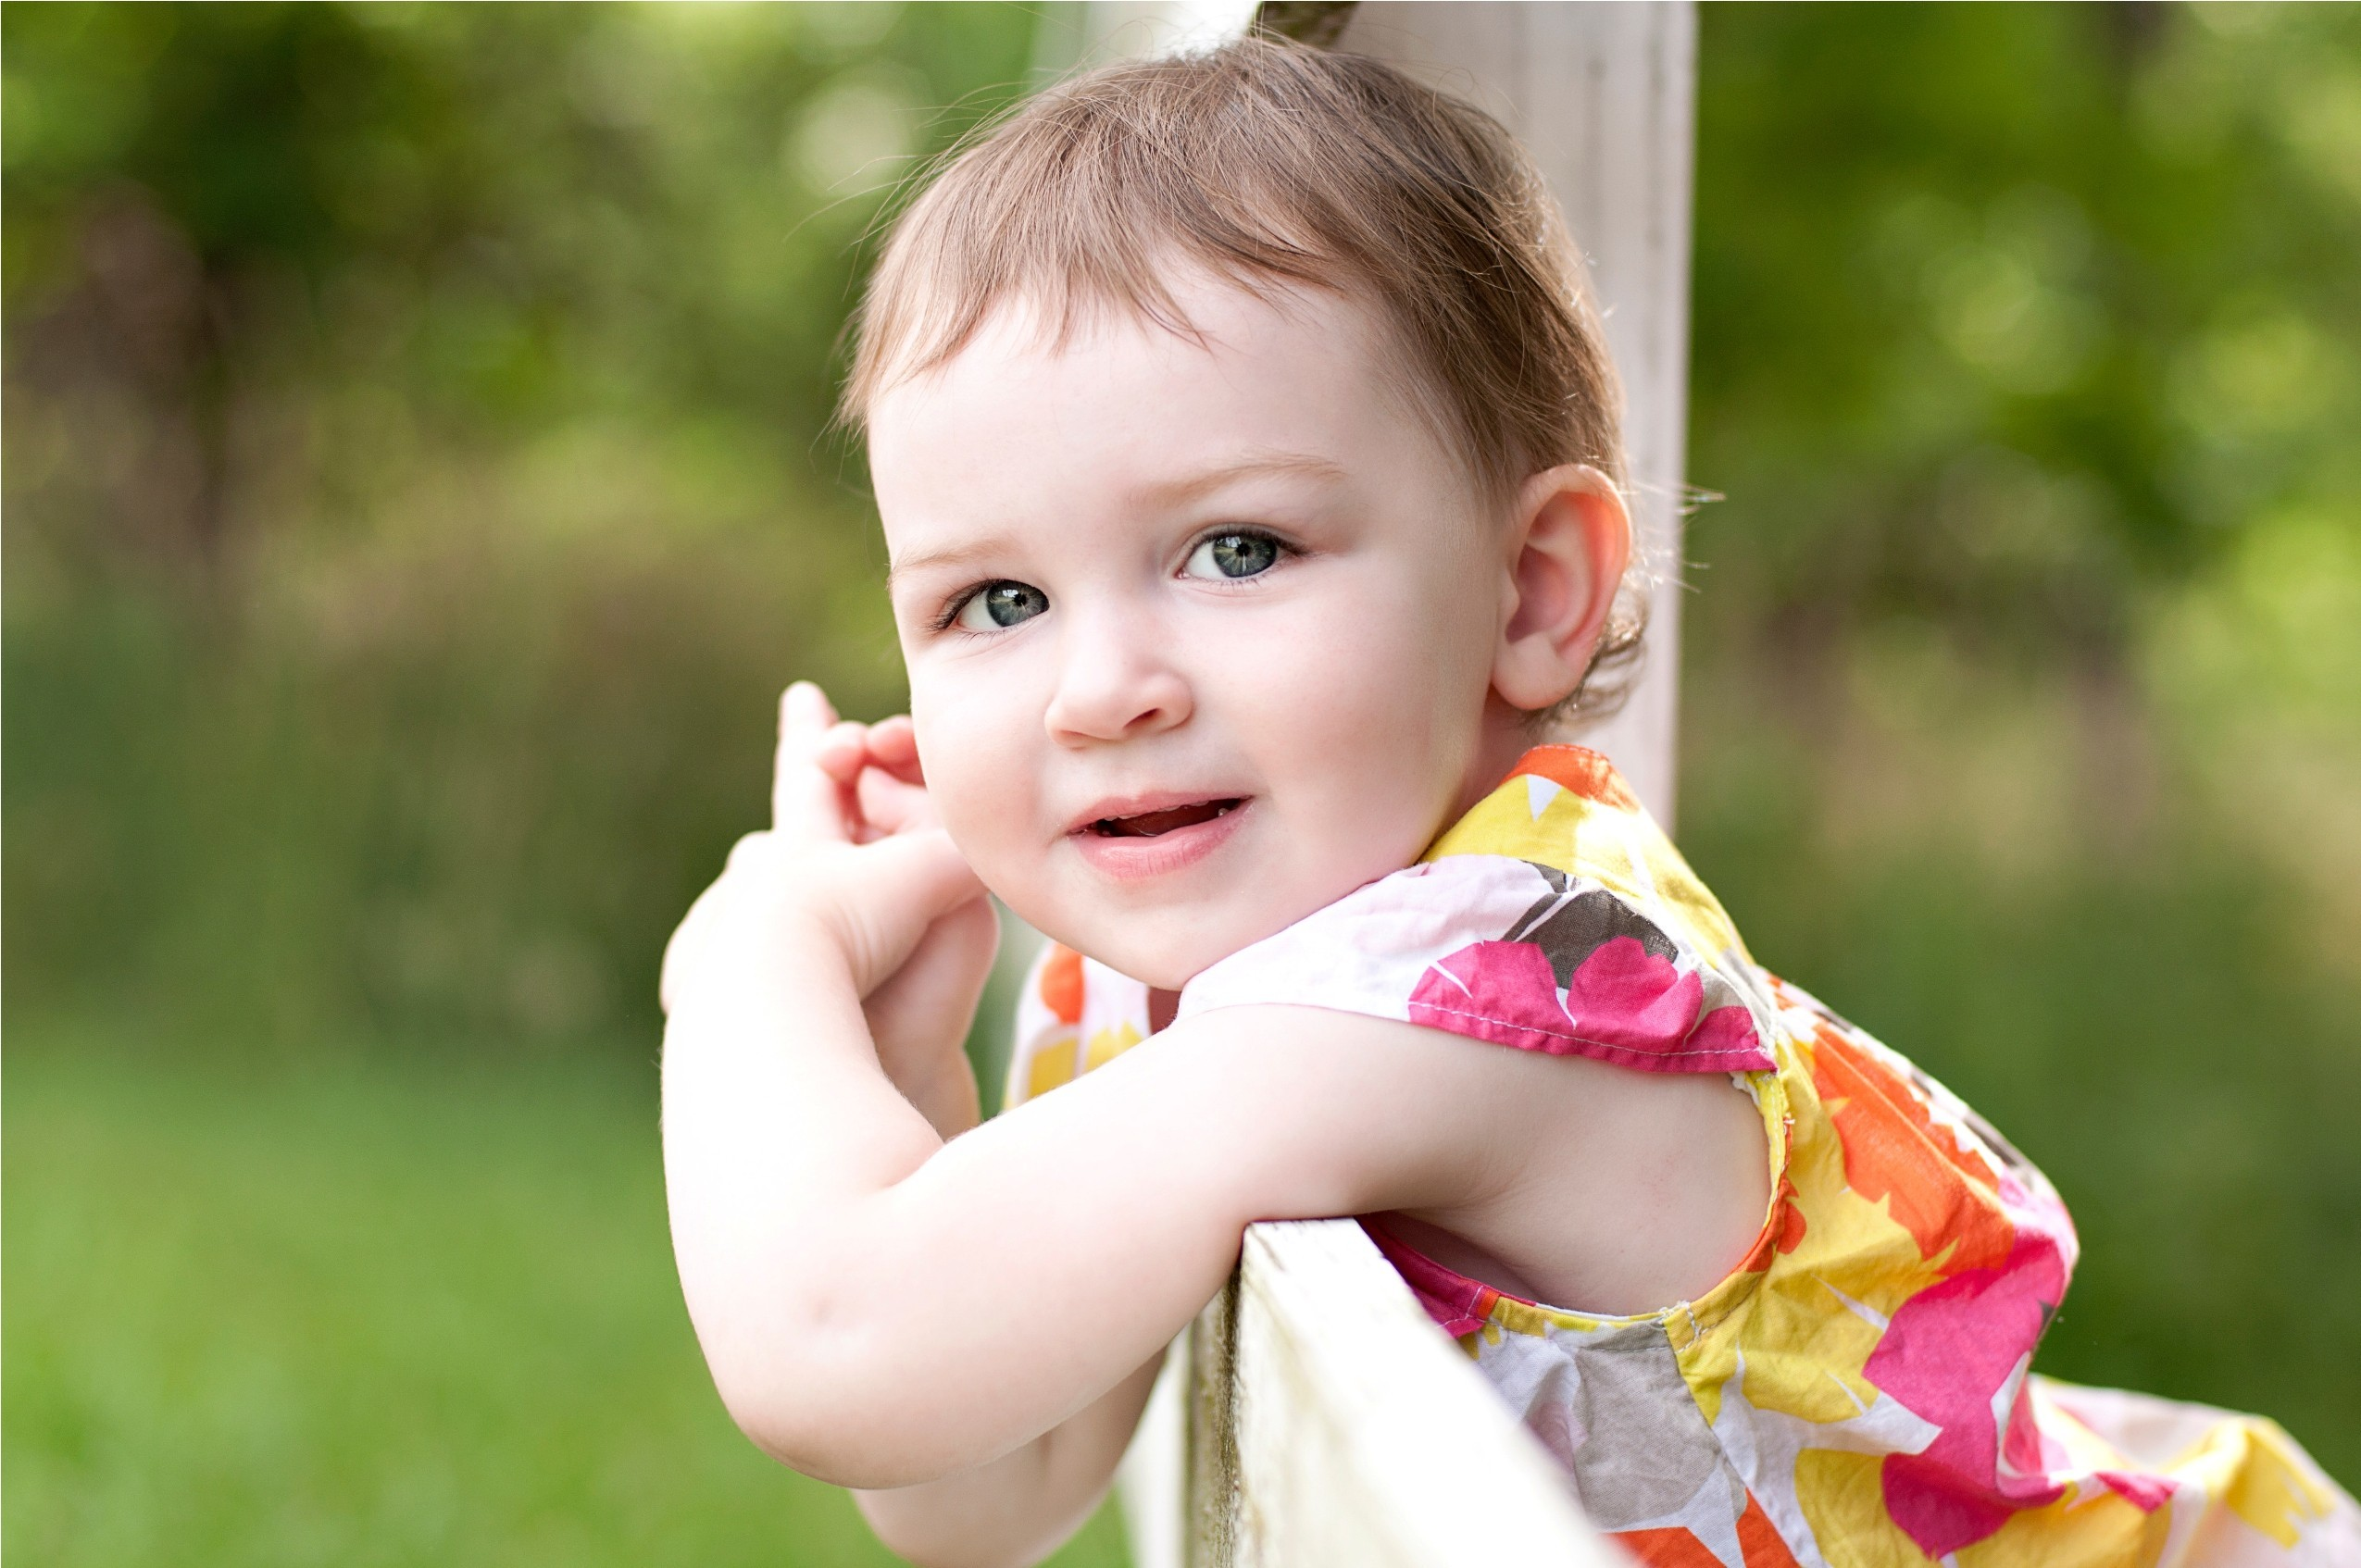 Beautiful Cute Baby Wallpapers: Beautiful Babies Wallpapers 2018 (65+ Images